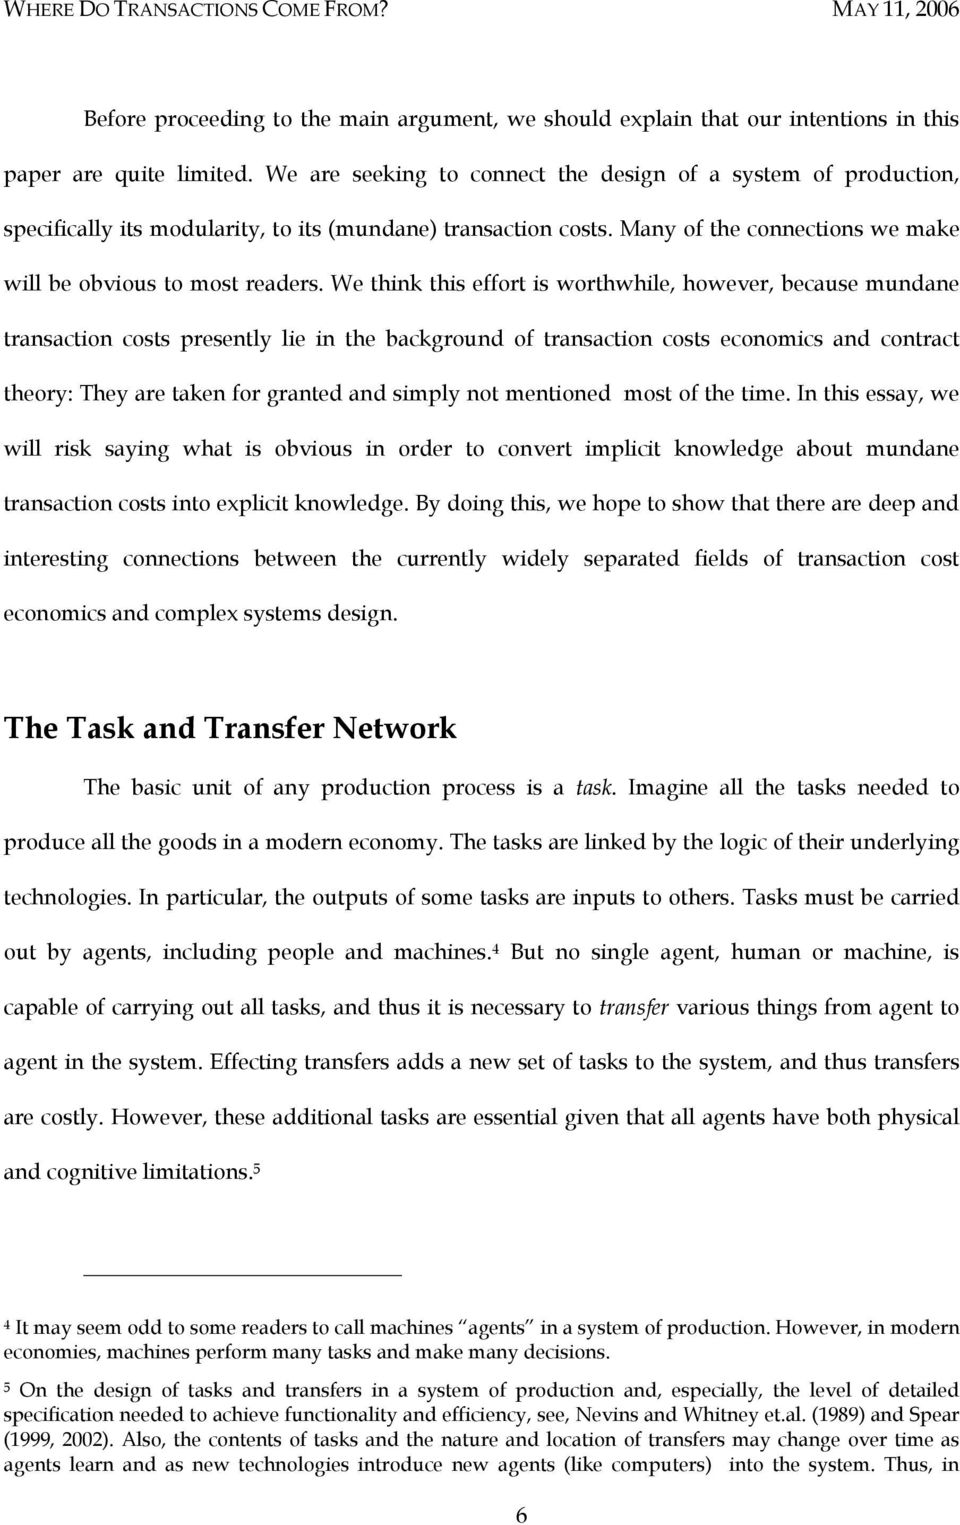 We think this effort is worthwhile, however, because mundane transaction costs presently lie in the background of transaction costs economics and contract theory: They are taken for granted and